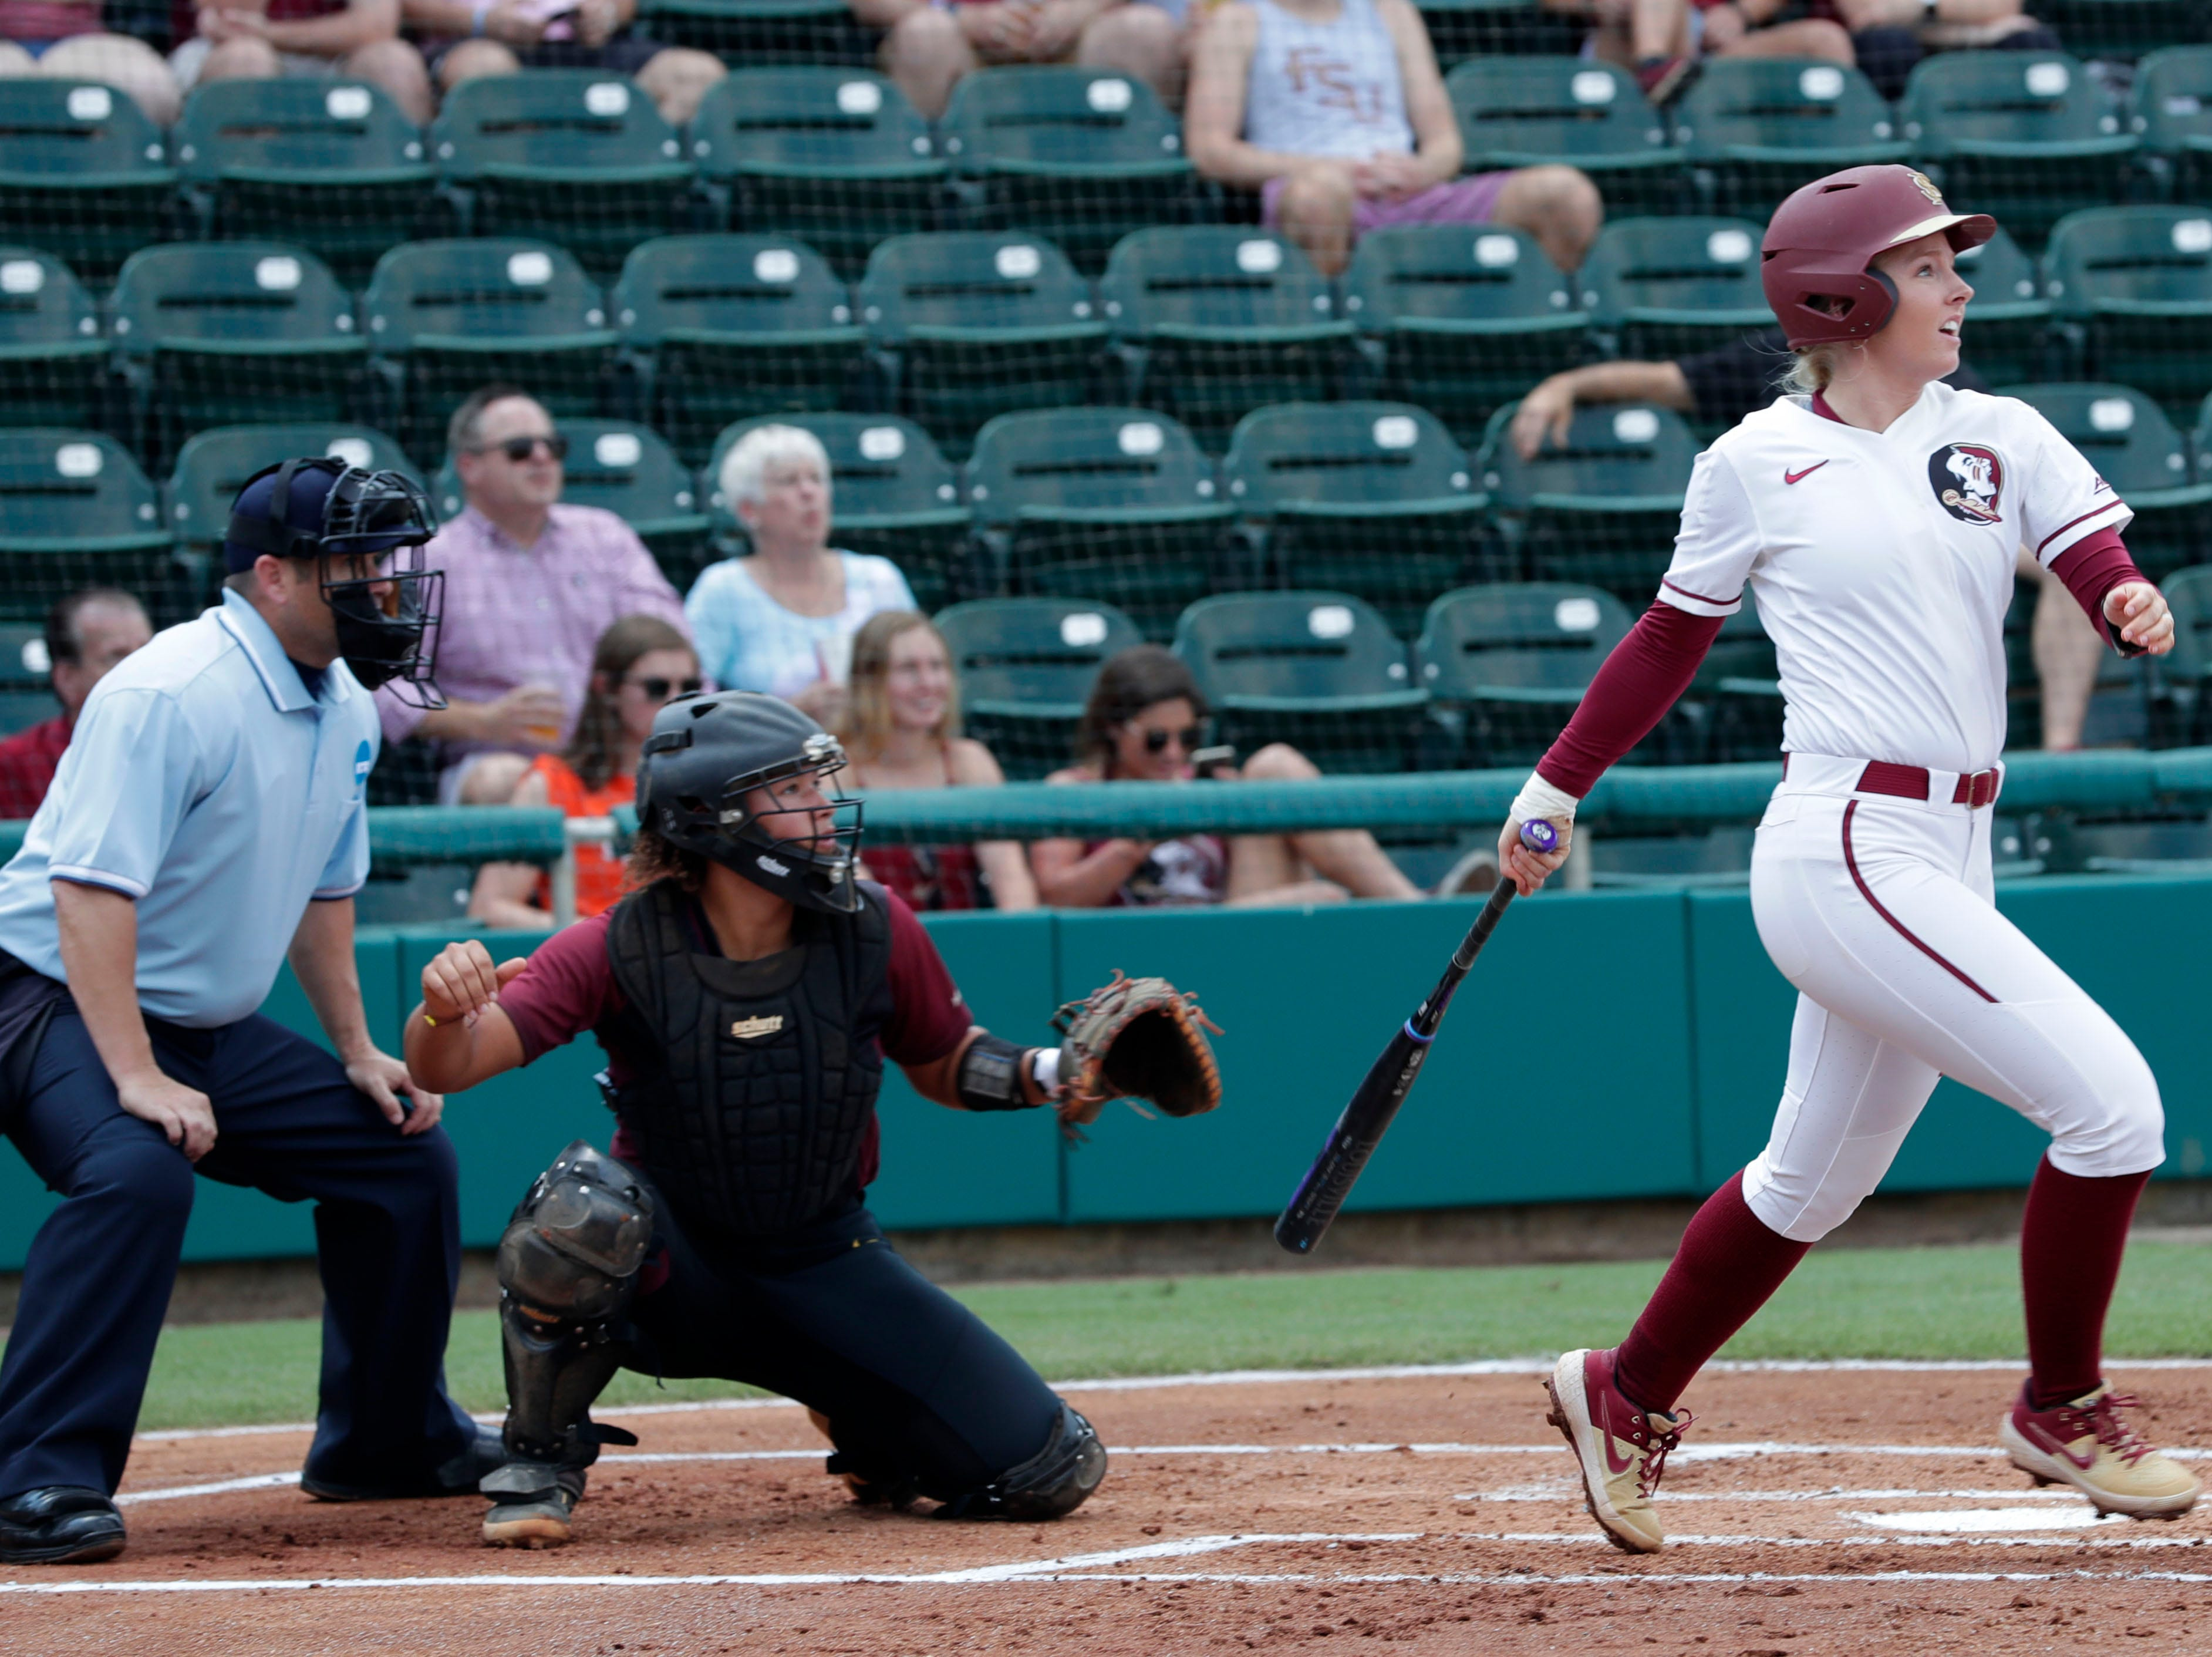 Florida State Seminoles utility player Sydney Sherrill (24) watches as the ball she hits flies to the outfield. The Florida State Seminoles host the Bethune-Cookman Wildcats in the first round of the NCAA Regional Playoffs Friday, May 17, 2019.